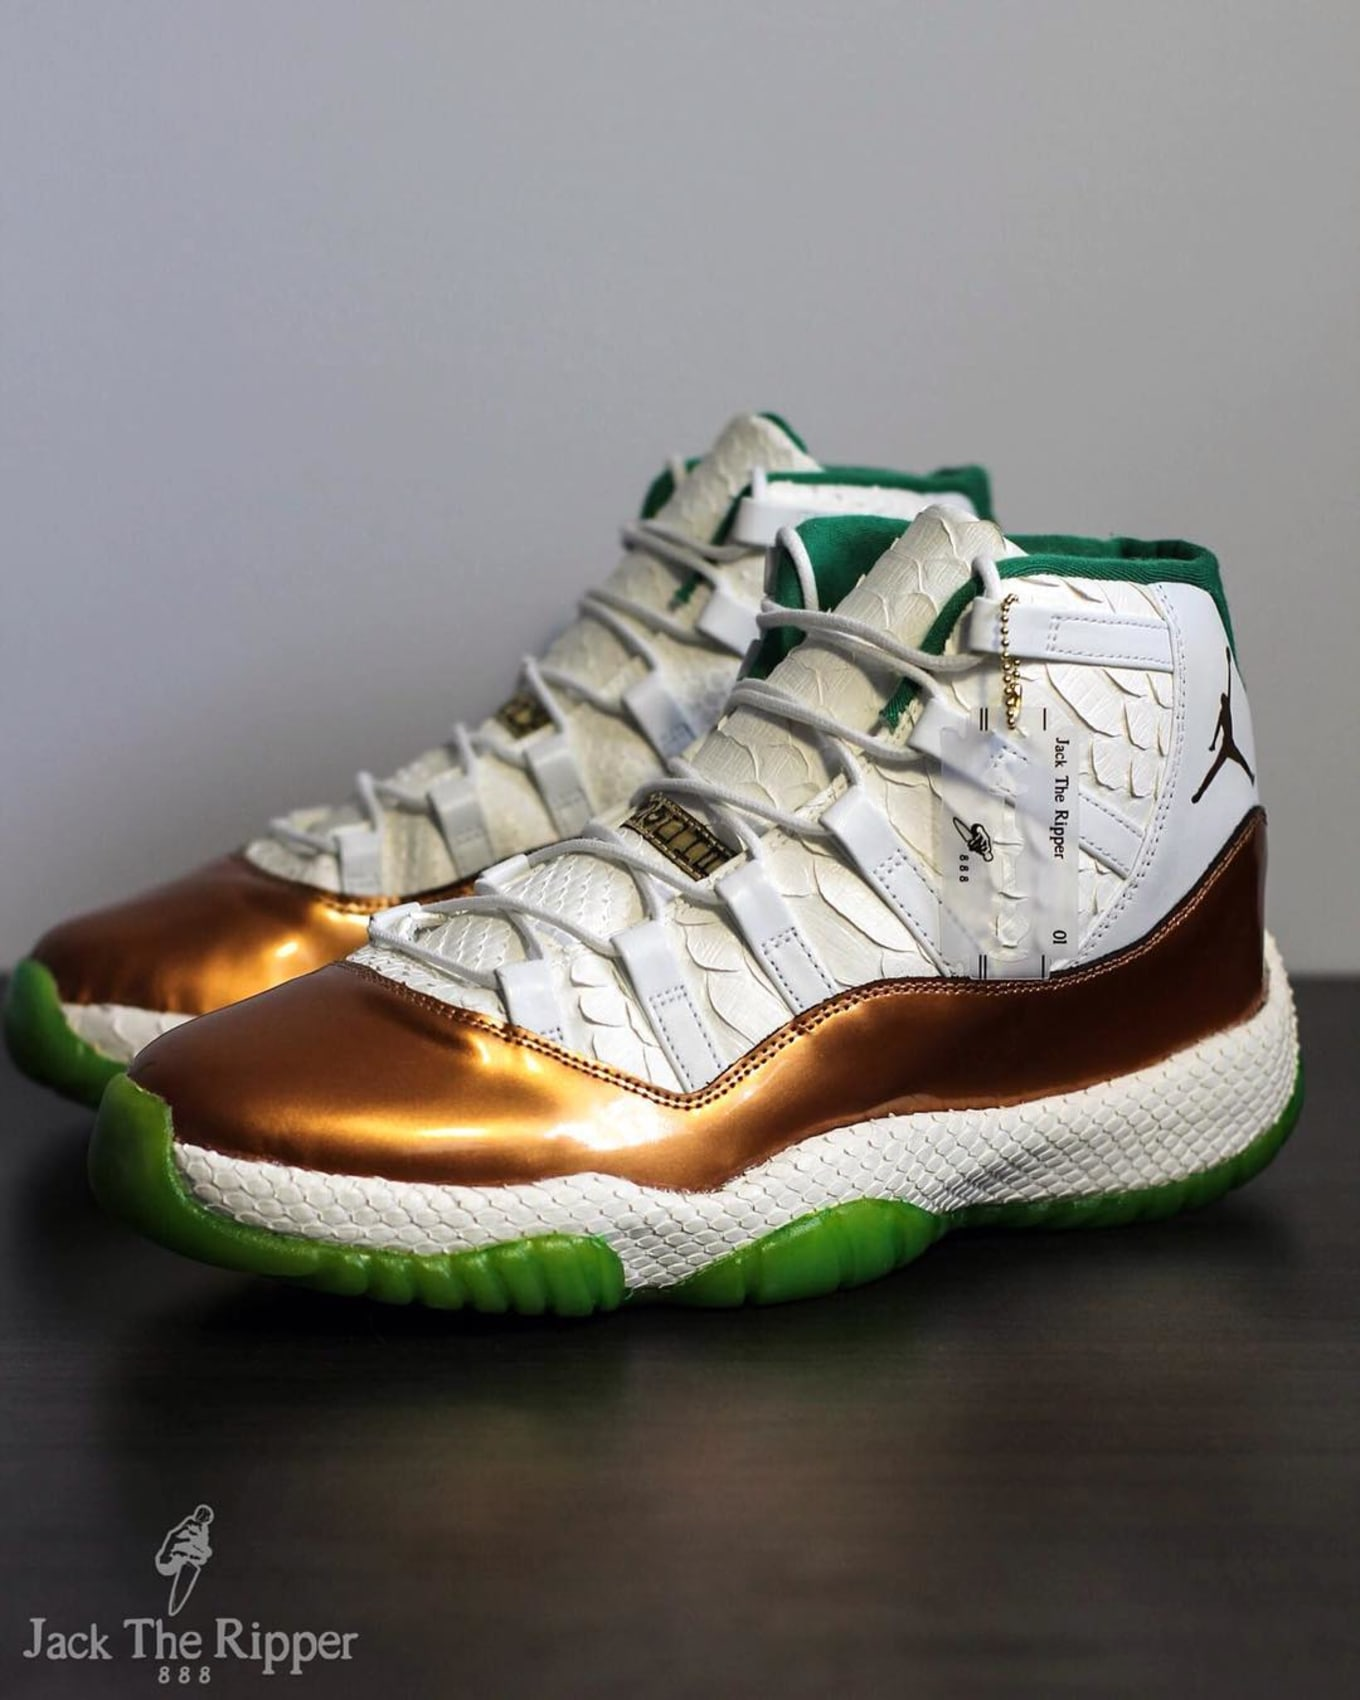 942d84f51d61 Air Jordan XI 11 Ray Allen Custom by Jack the Ripper